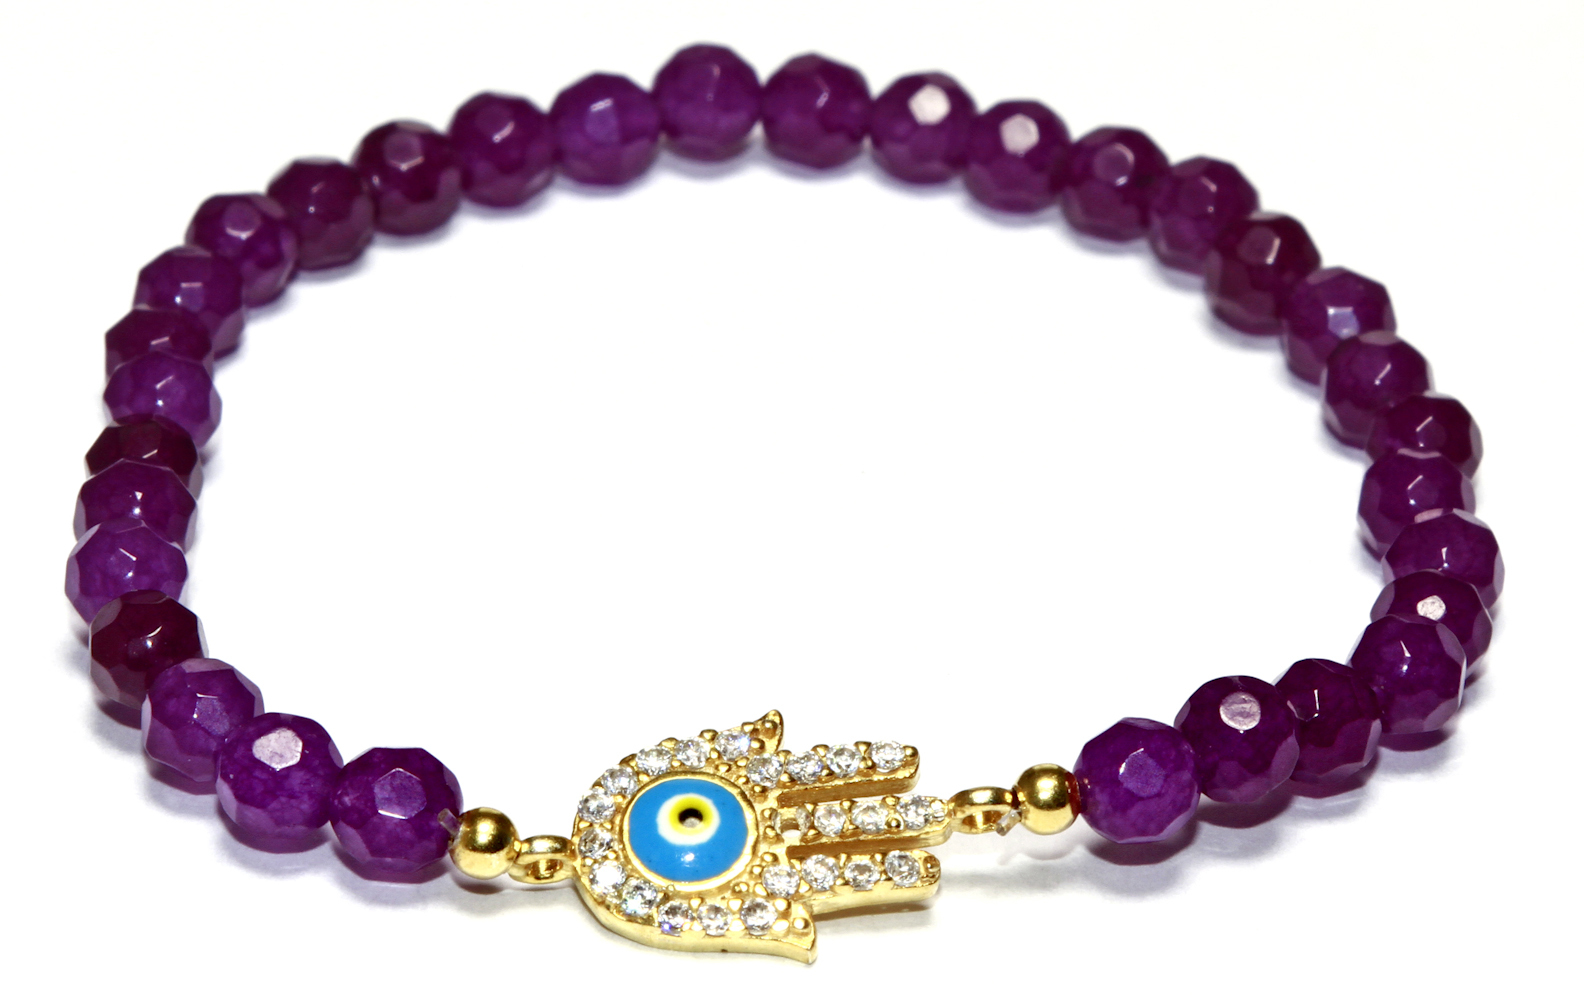 Gold Plated Sterling Silver Amethyst Light Blue Guardian Eye/Evil Eye Hamsa Bracelet